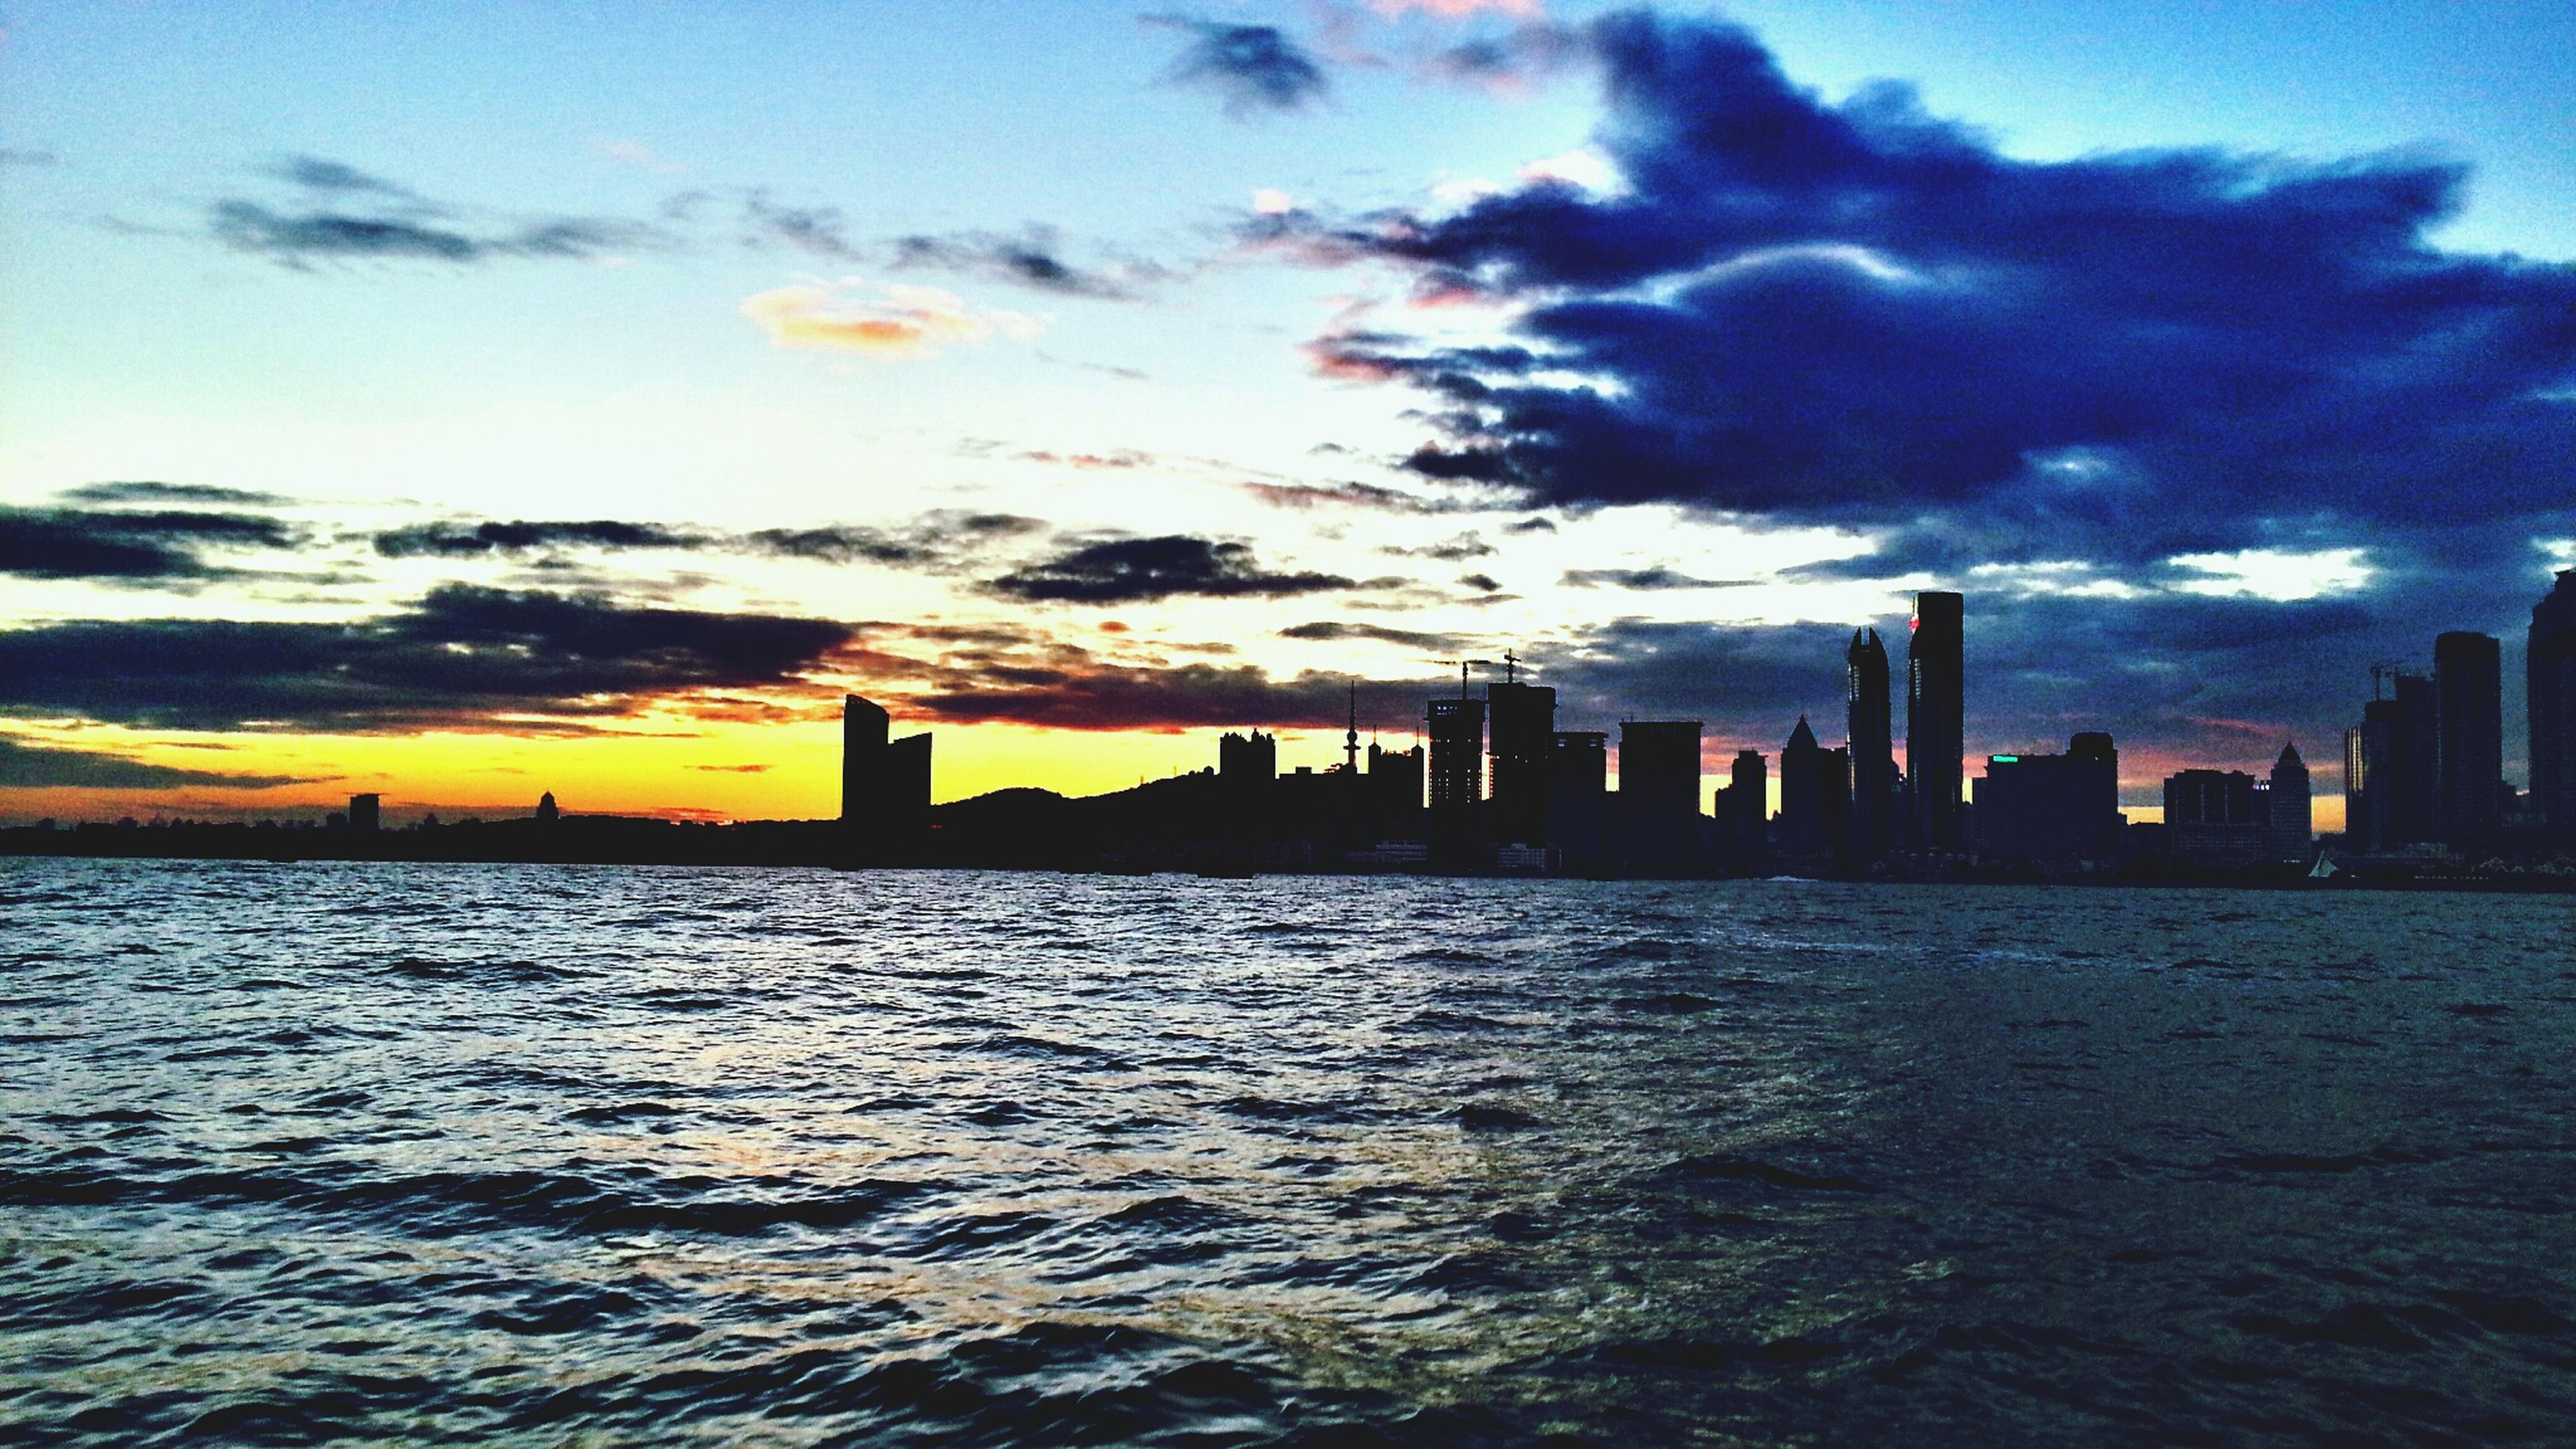 water, architecture, building exterior, built structure, waterfront, sky, city, sunset, cloud - sky, sea, skyscraper, cityscape, urban skyline, river, rippled, silhouette, cloud, skyline, scenics, tower